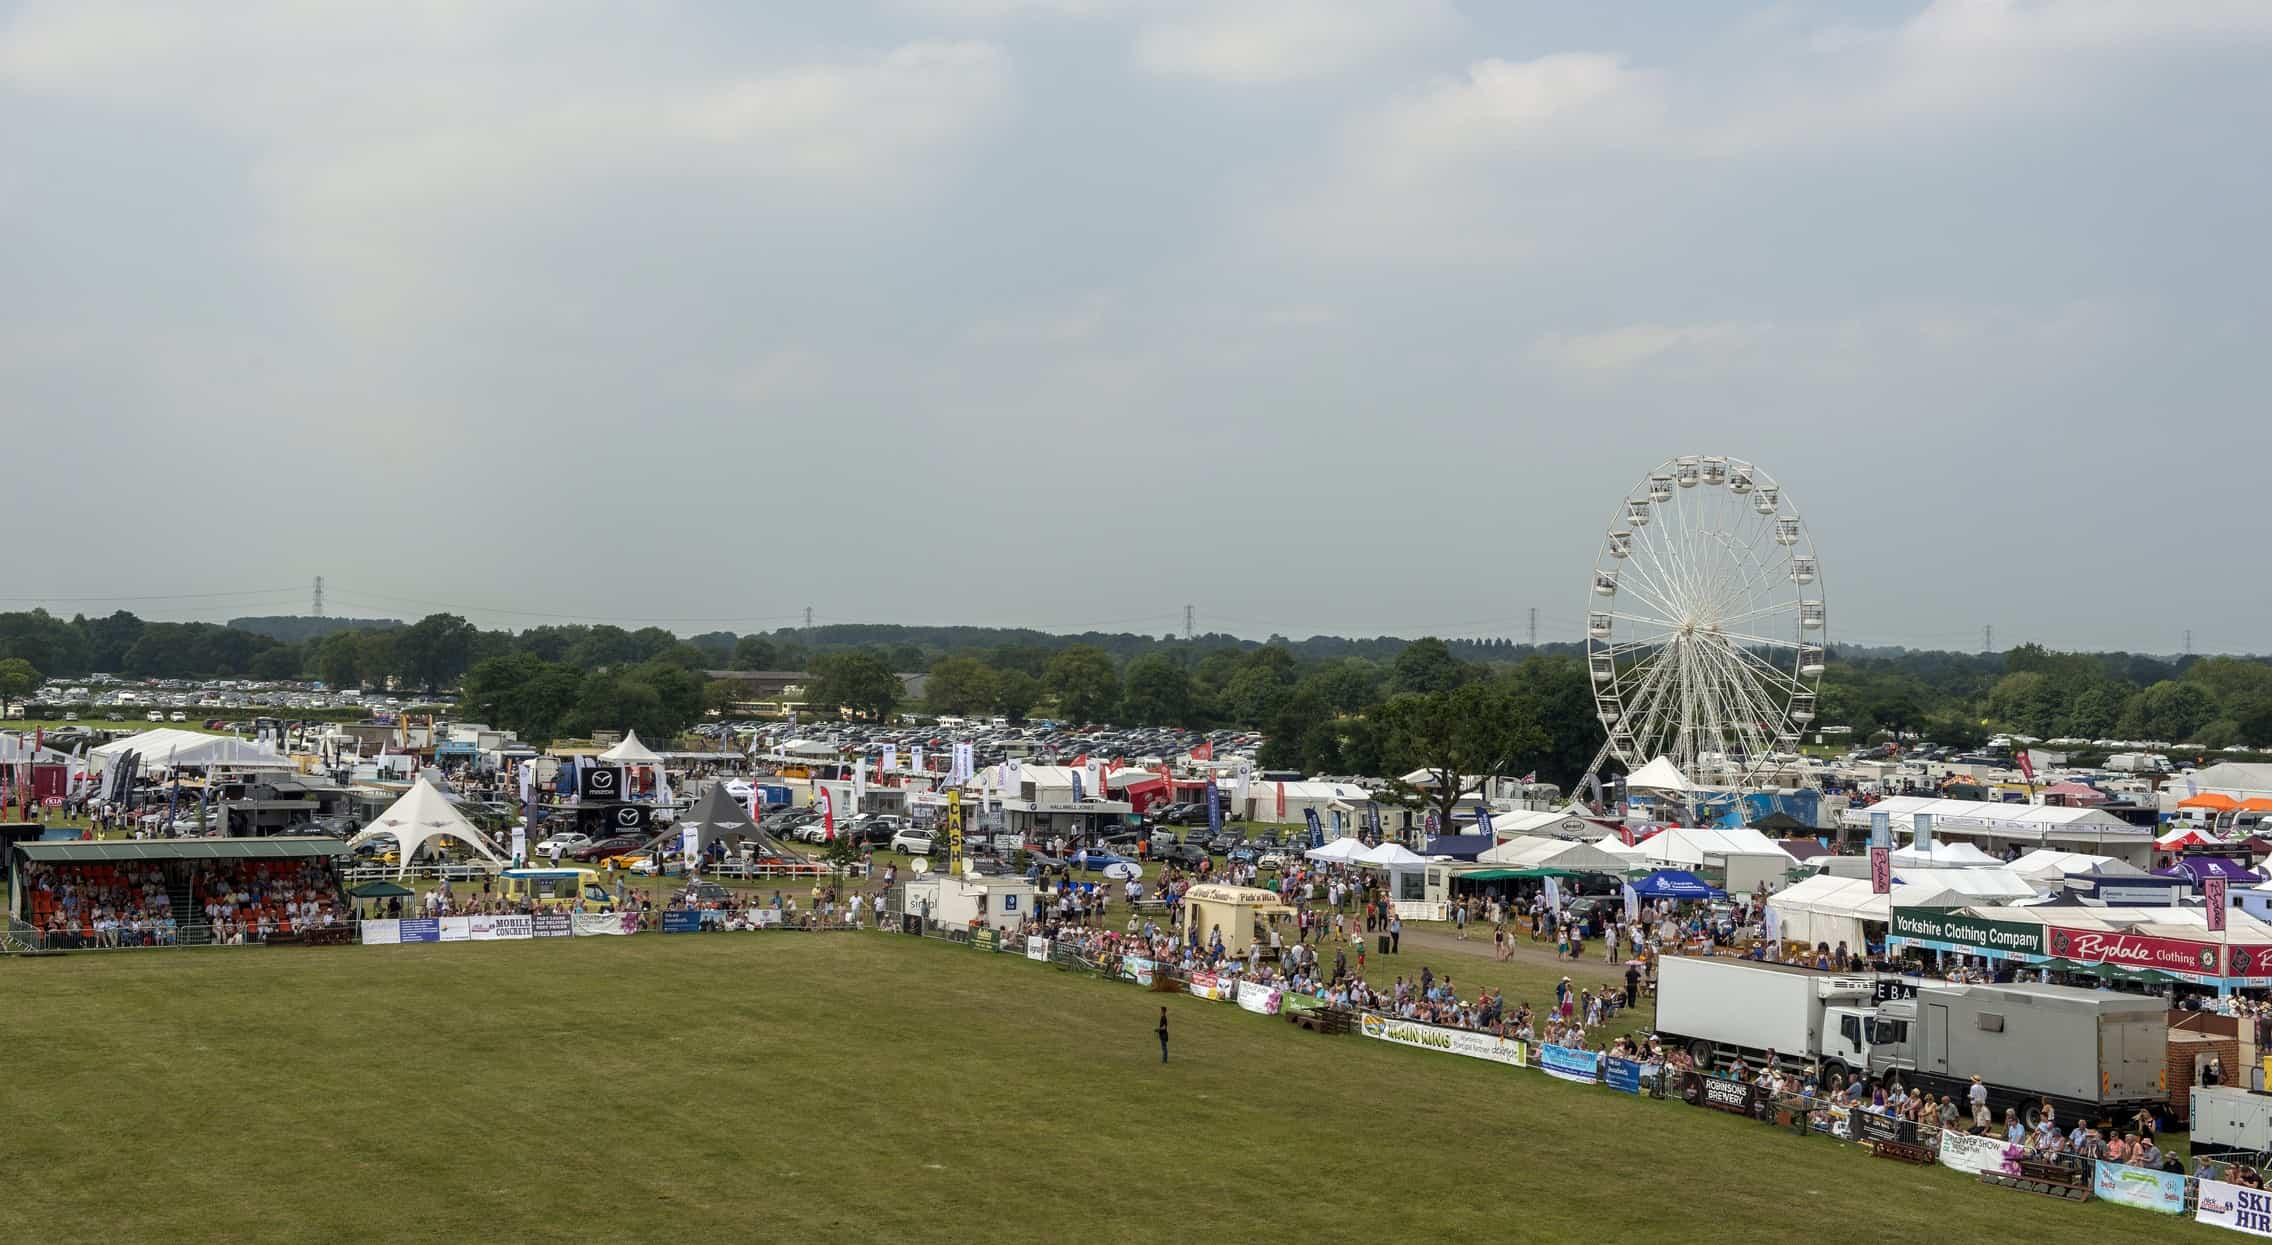 Royal Cheshire County Show 2019